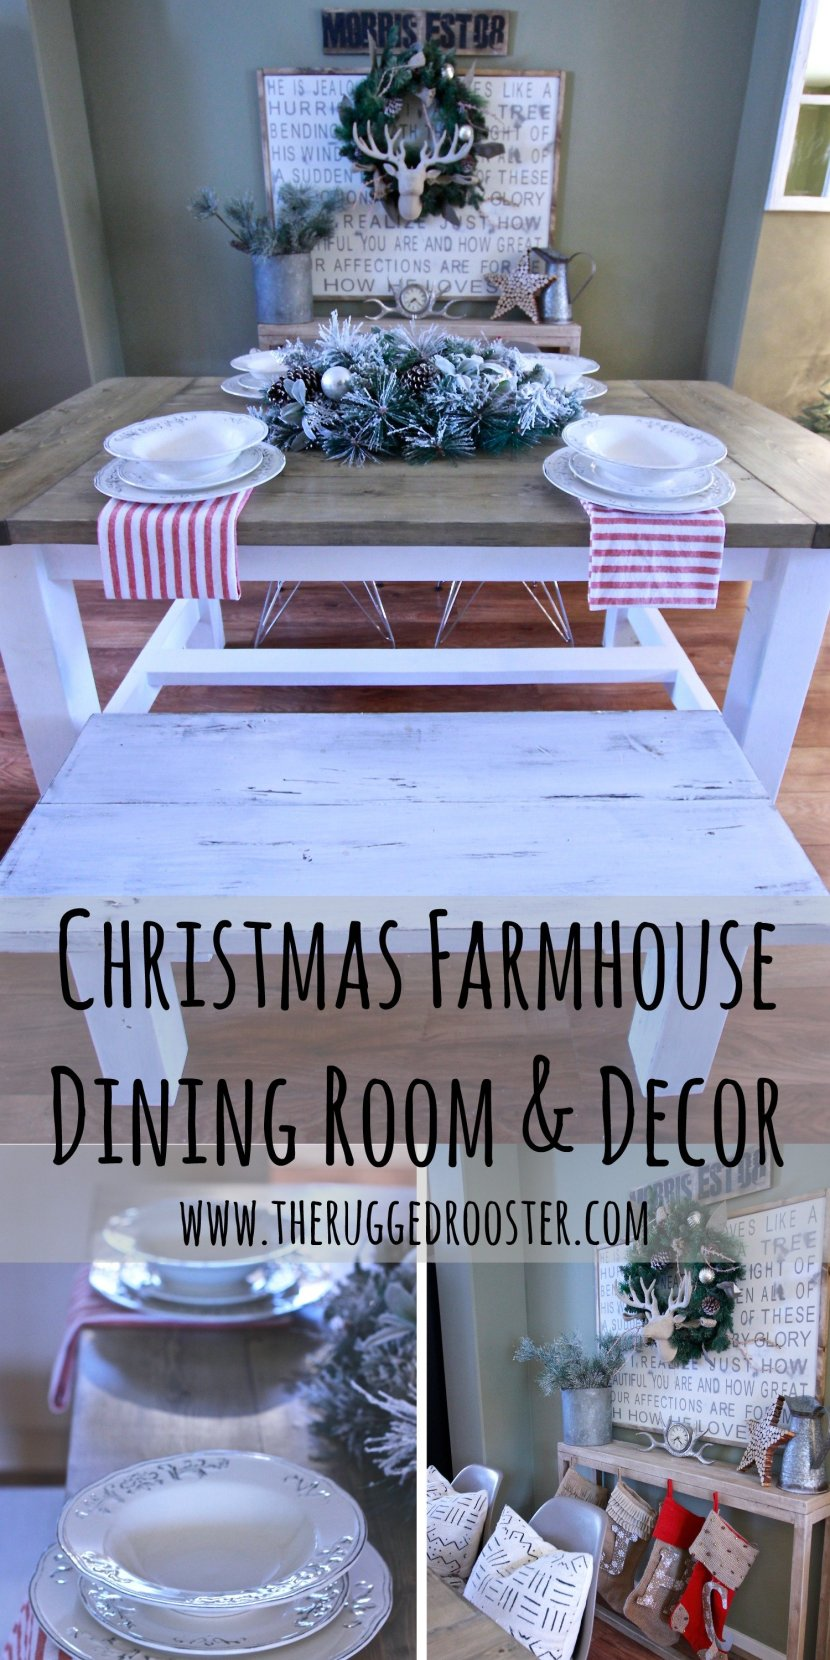 Christmas Farmhouse Dining Room Space, DIY Ana White harvest Table, Rustic Farmhouse Table www.whitepicketfarmhouse.com